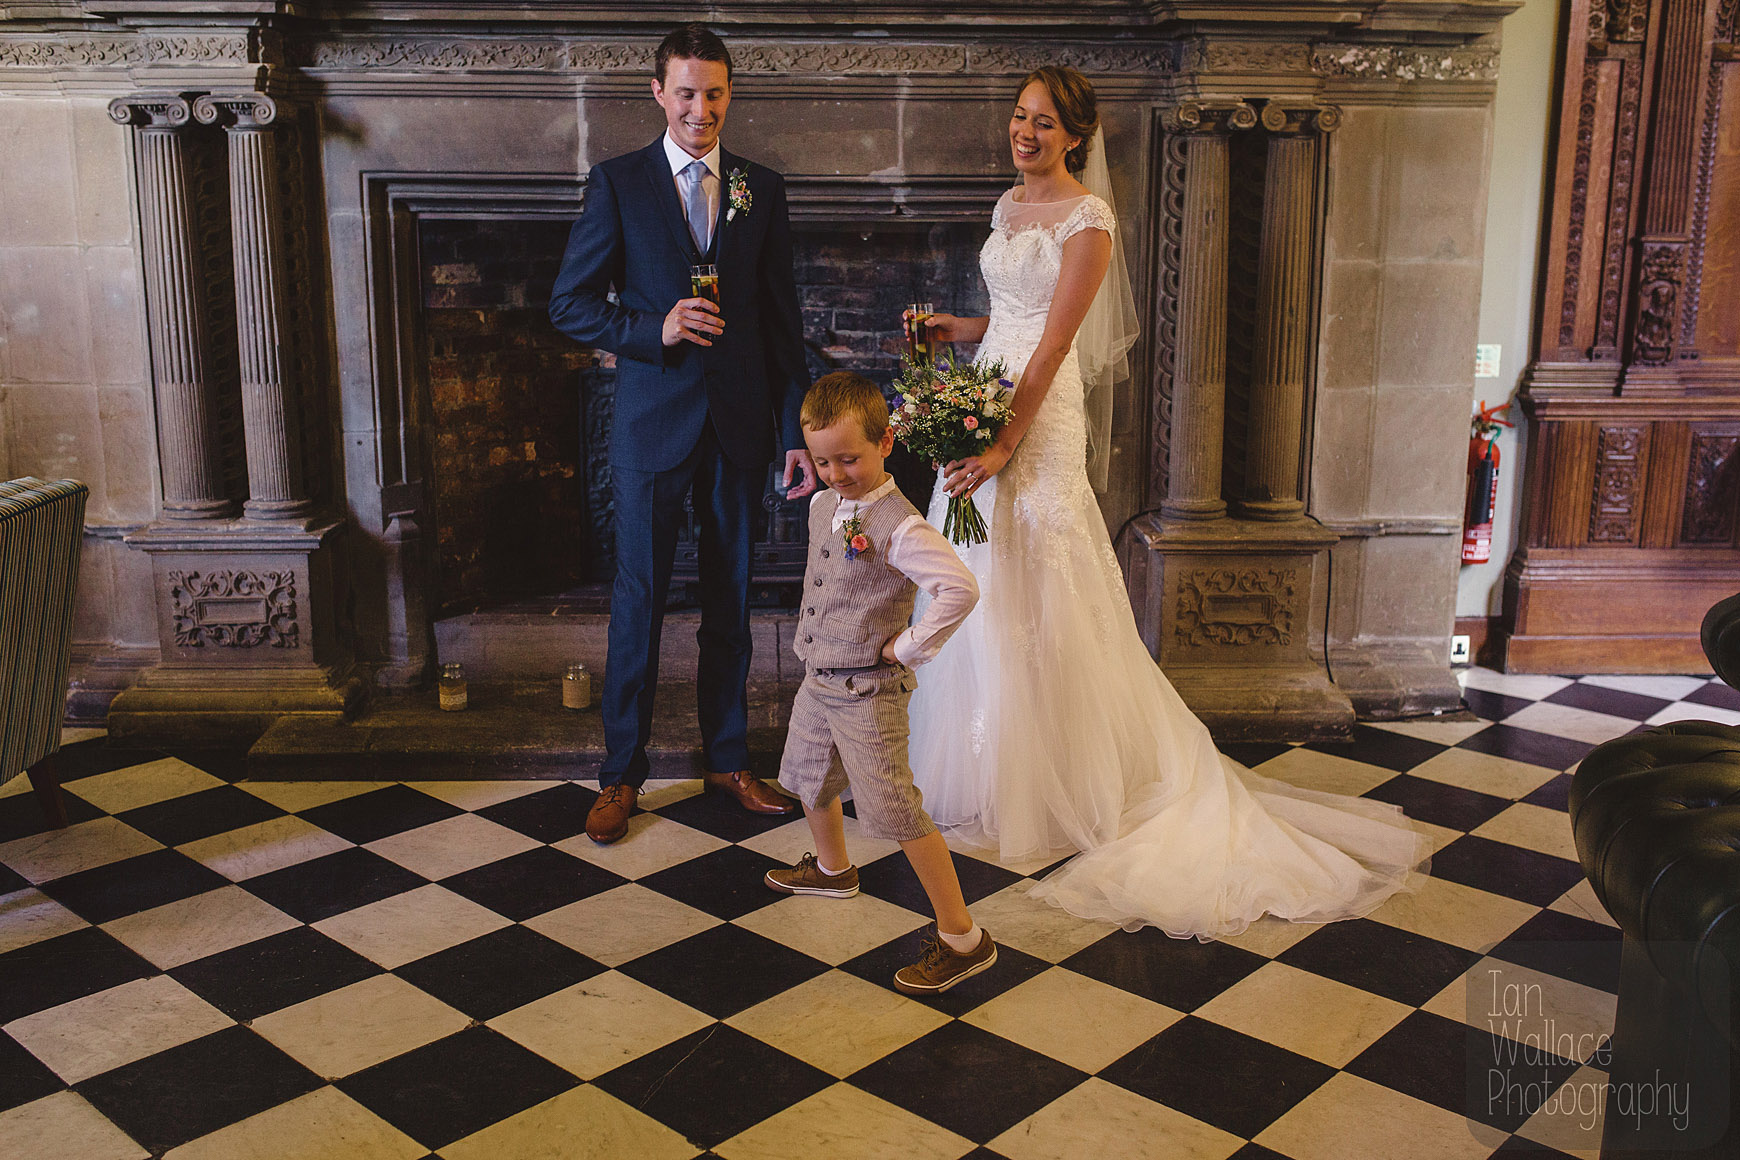 Newly married couple laugh as boy poses in front of fireplace